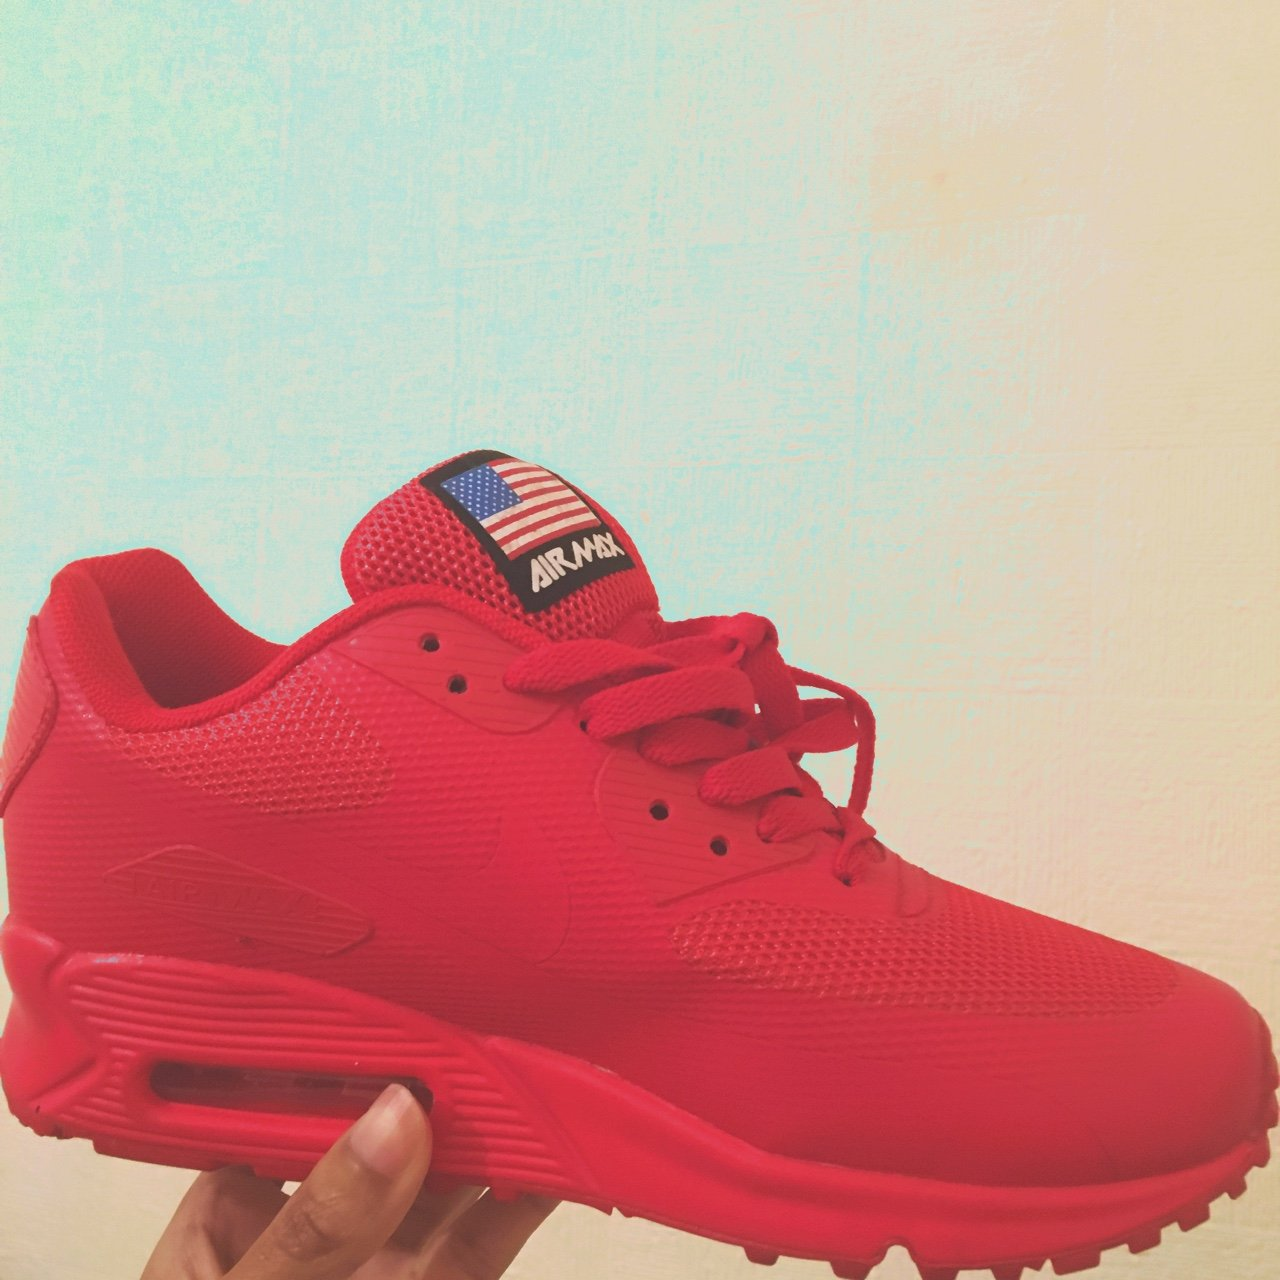 Nike Air Max 90 USA Flag Hyperfuse QS Size 36 3. This was a - Depop 296195101a